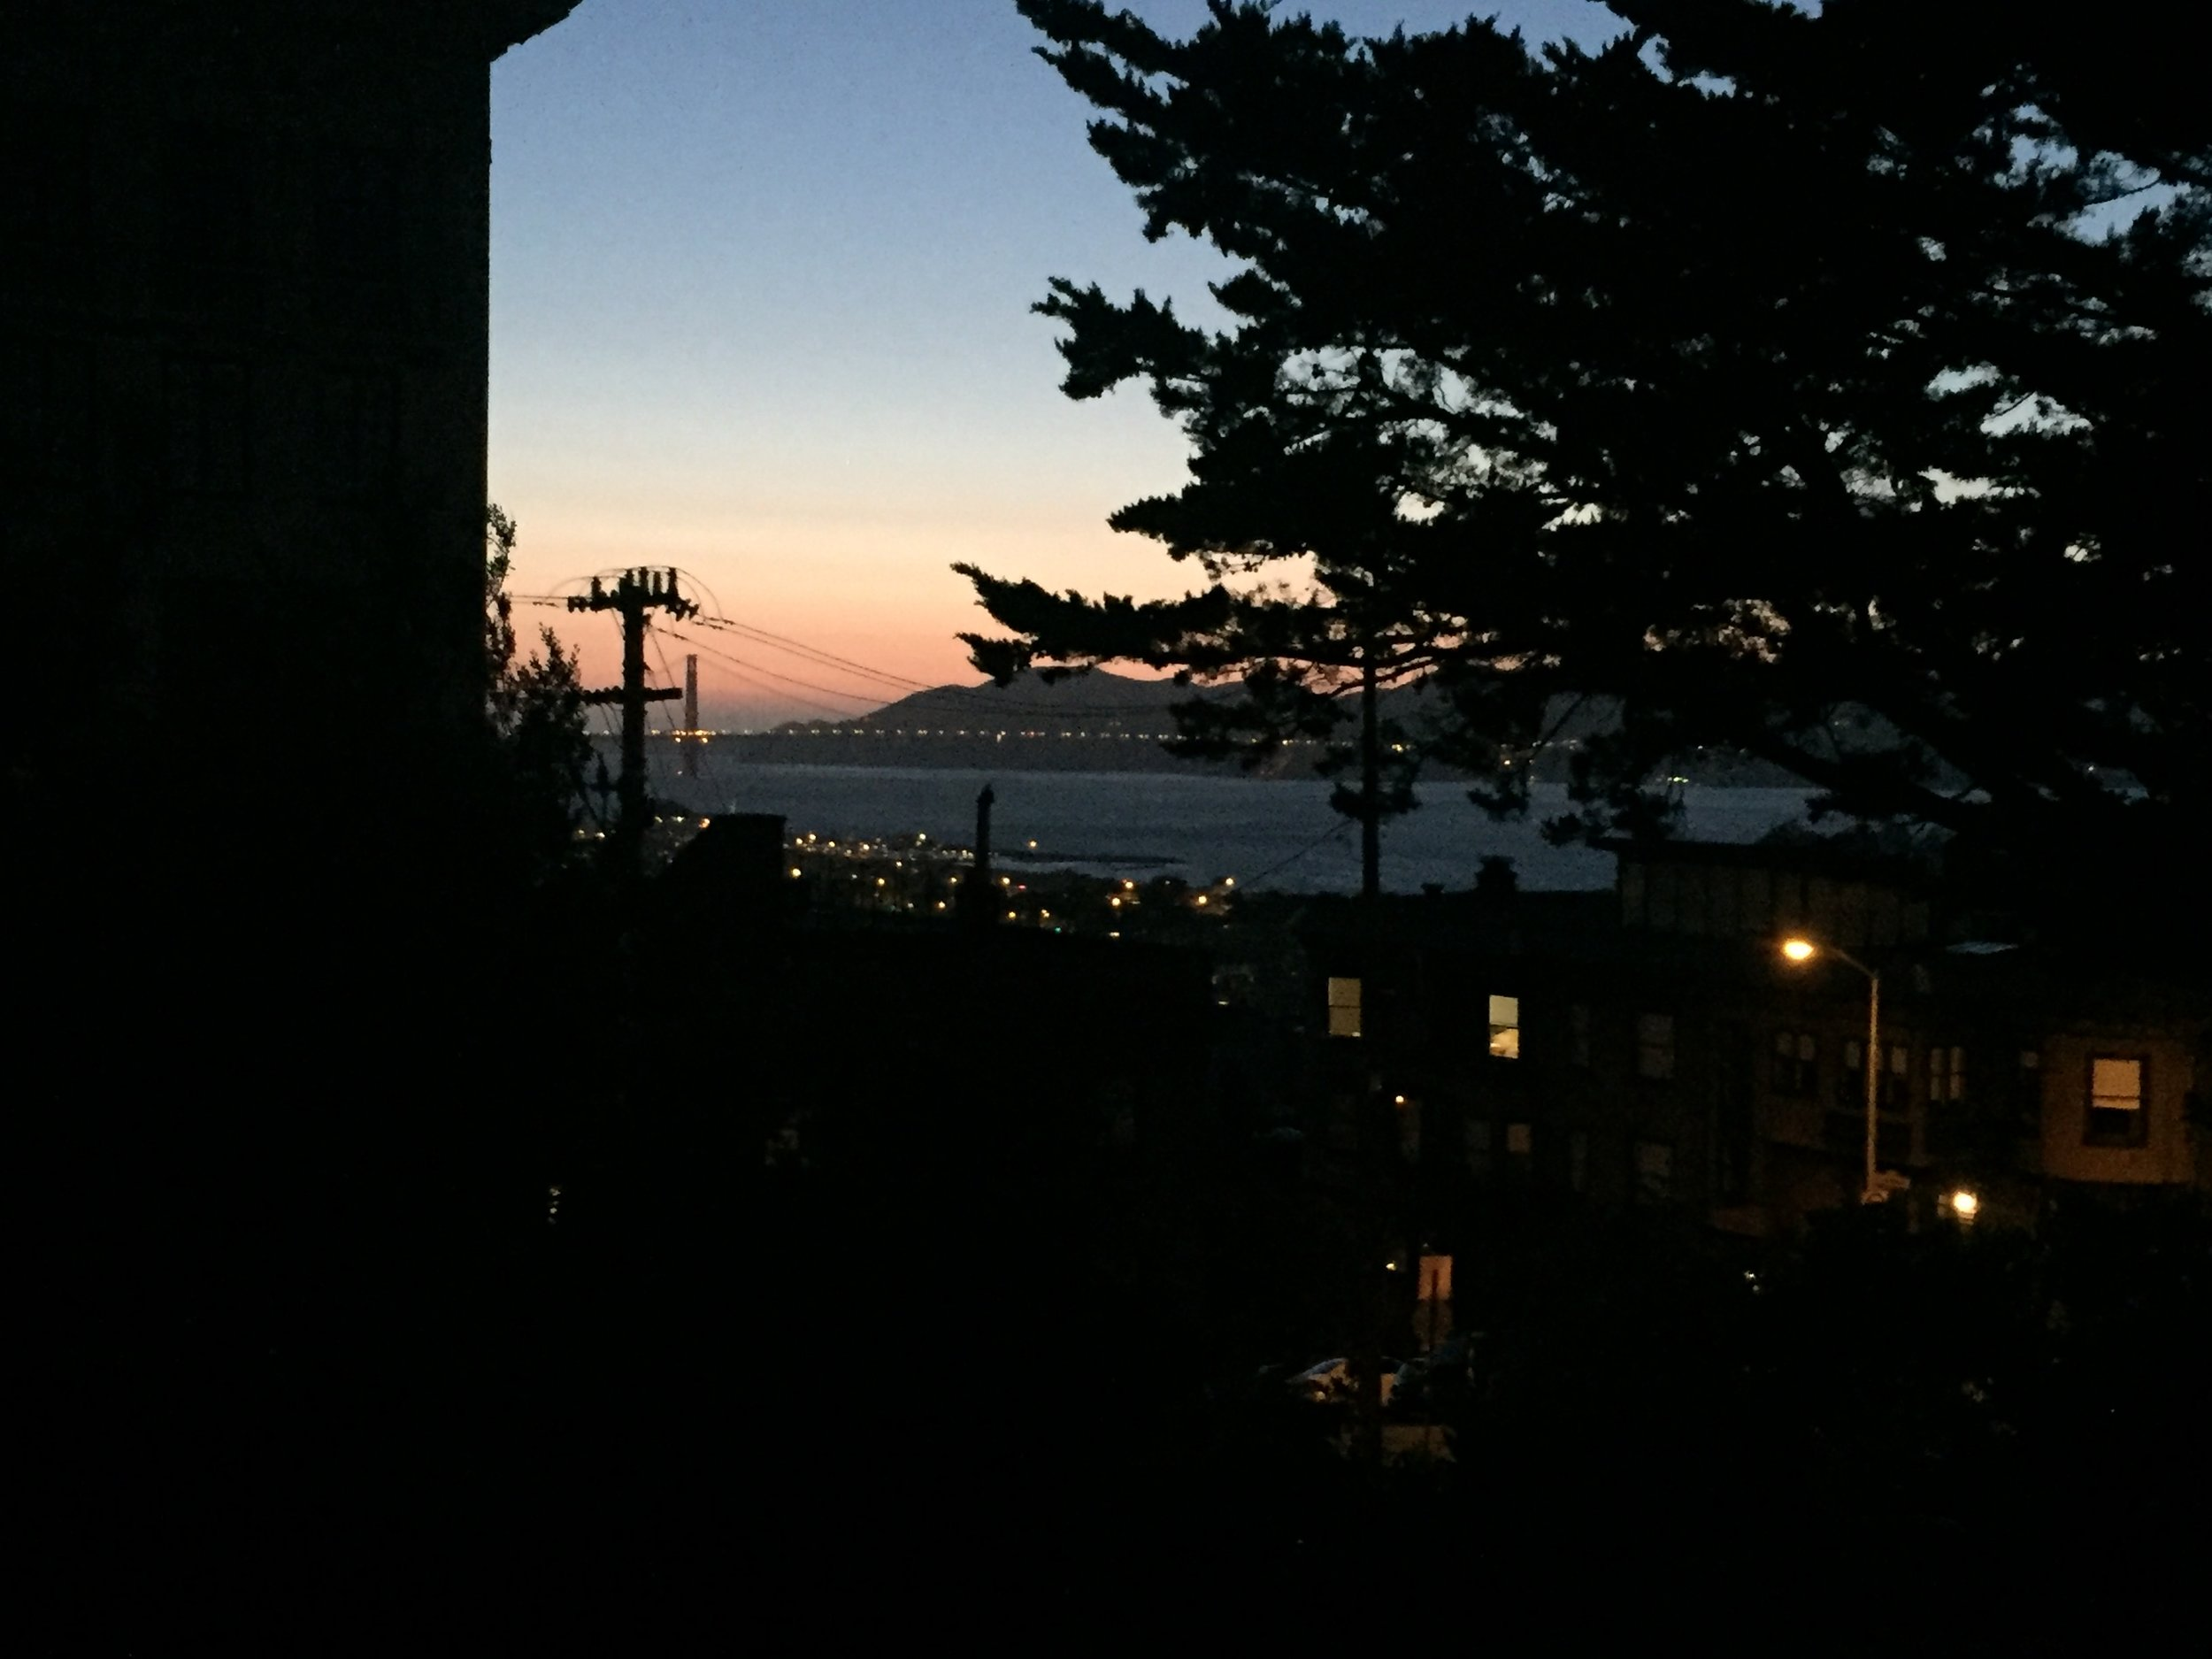 San Francisco evening